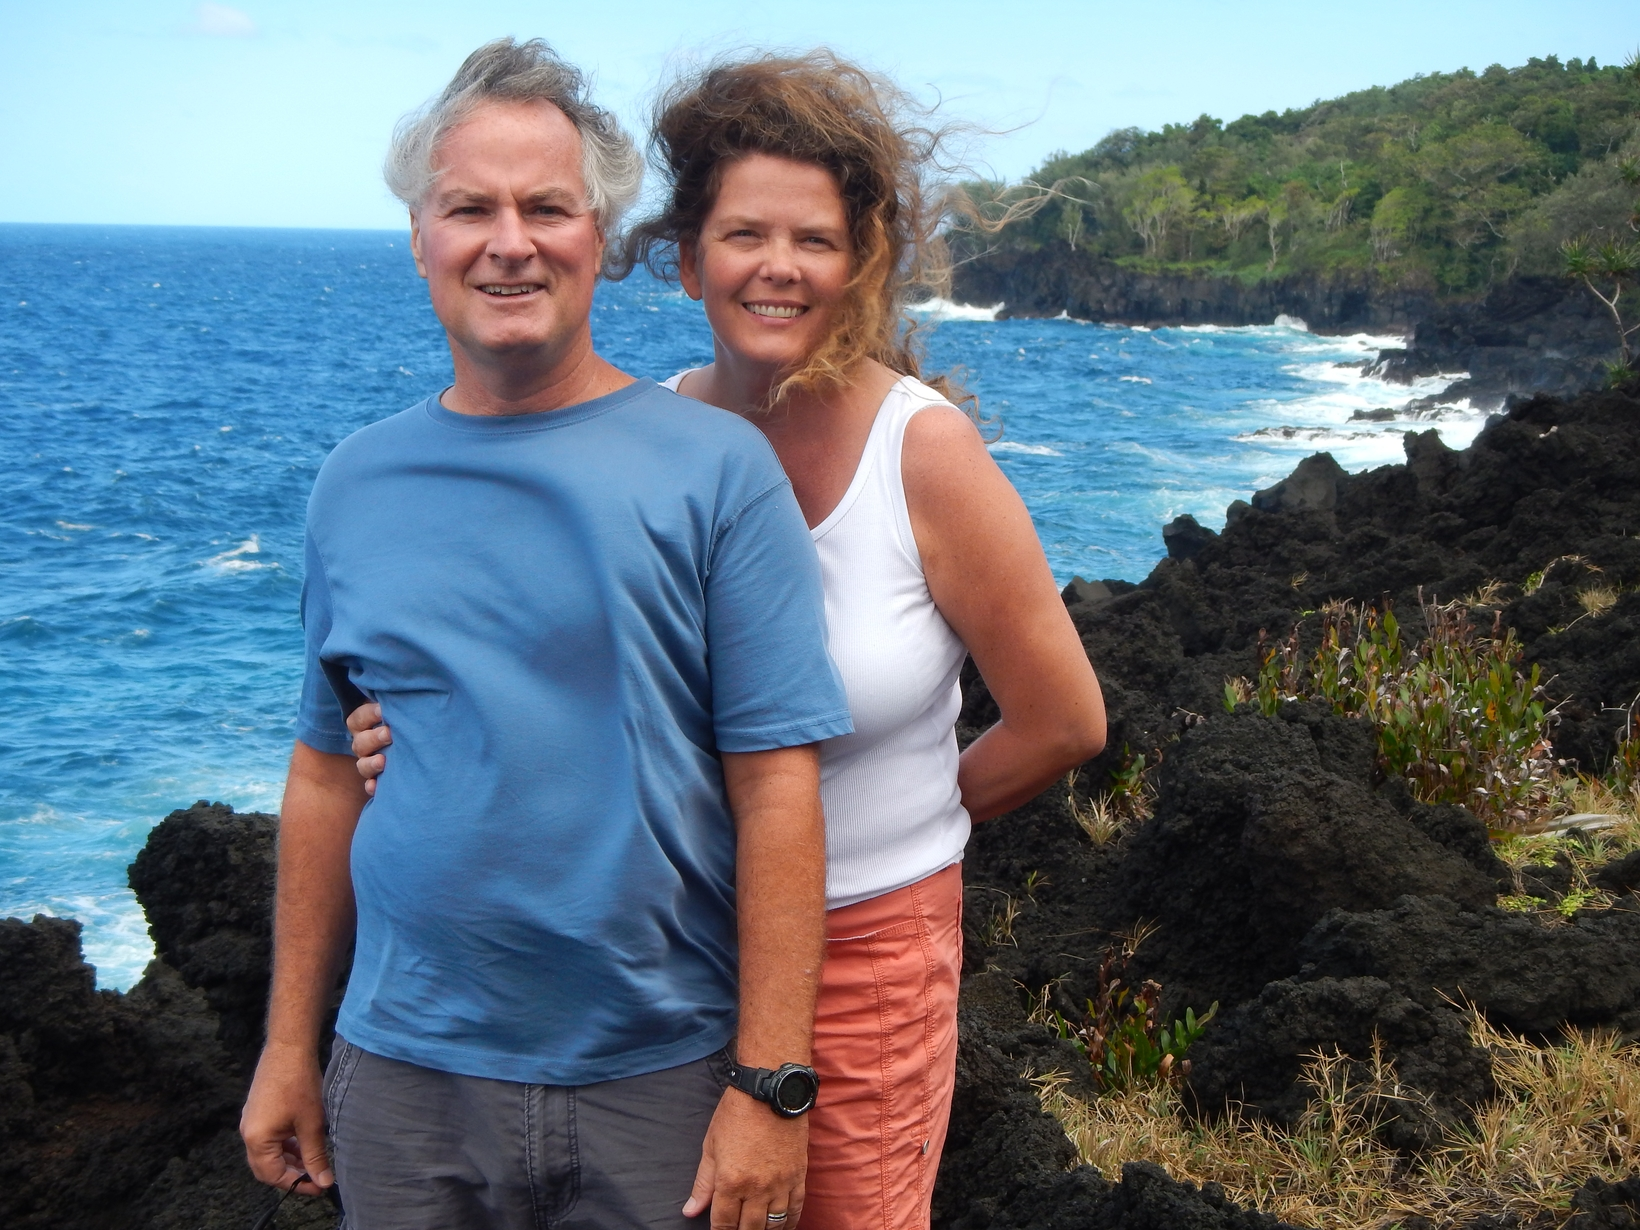 Patricia & Michael from Estero, Florida, United States